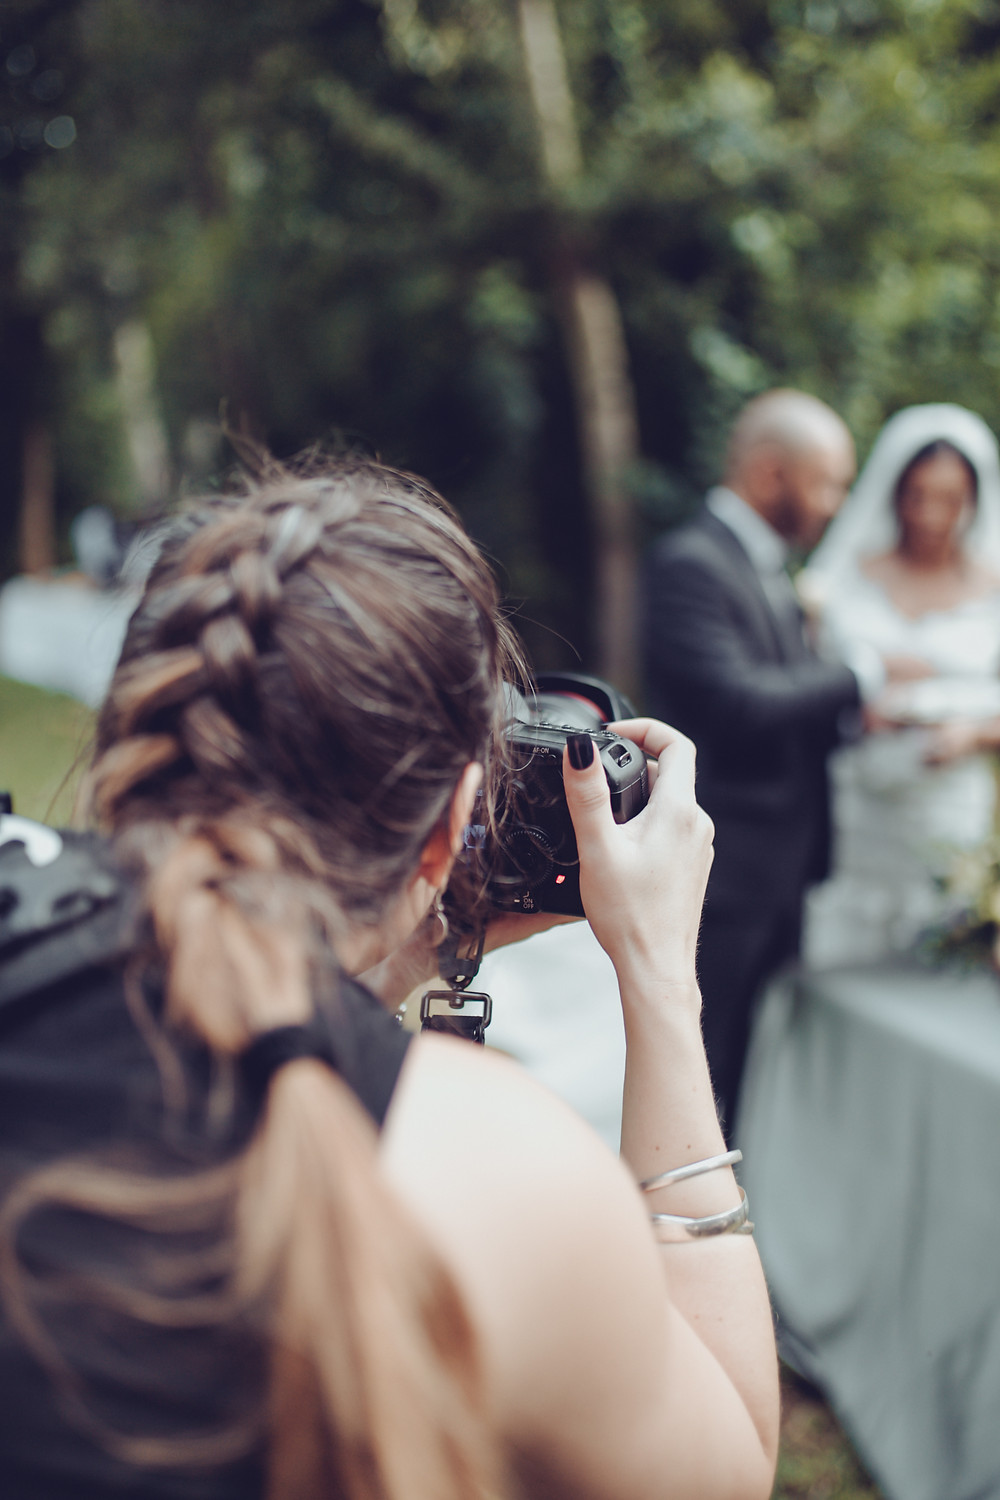 Behind the scenes - Photographing Vickie and Ziyaad's wedding, Muldersdrift 2019